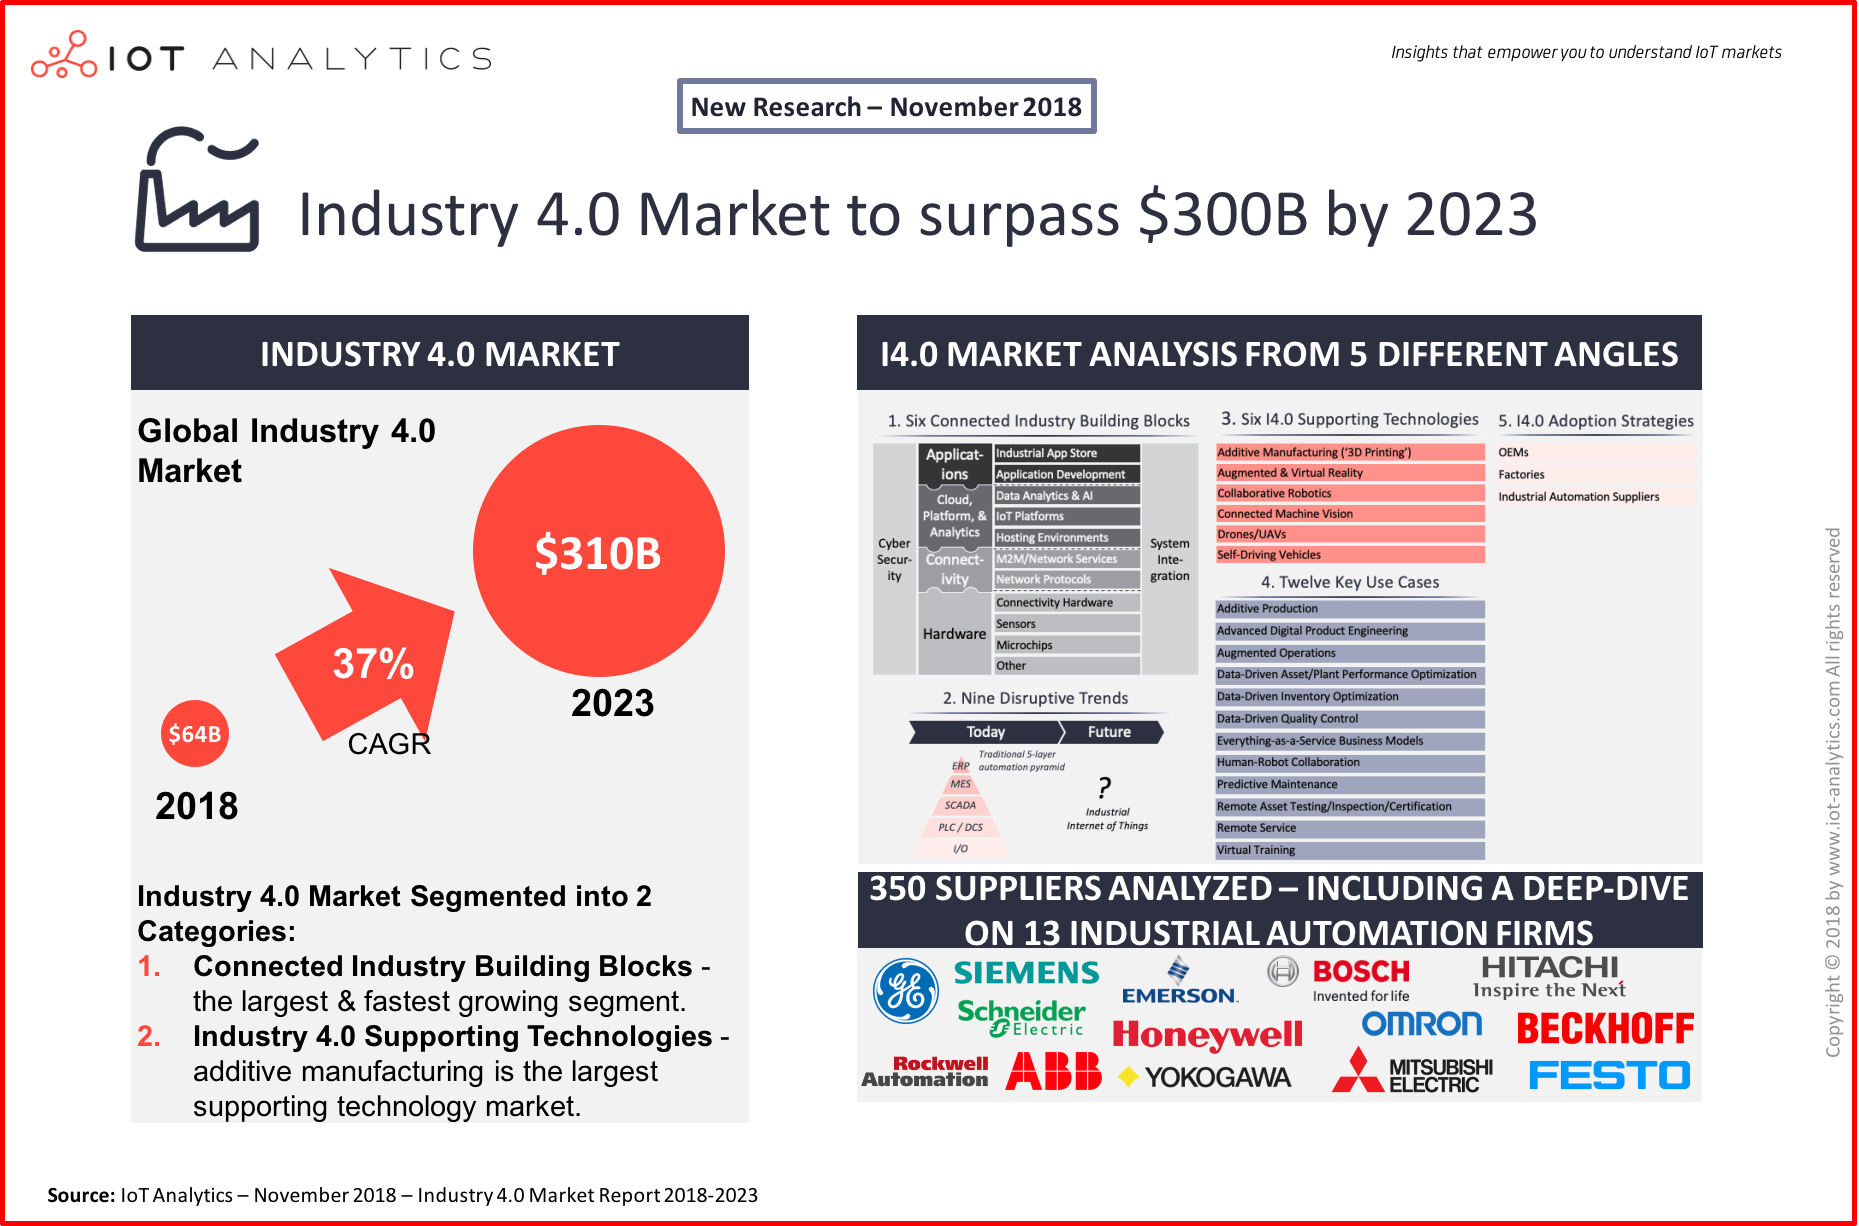 Industry 4.0 & Smart Manufacturing Market Report 2018-2023